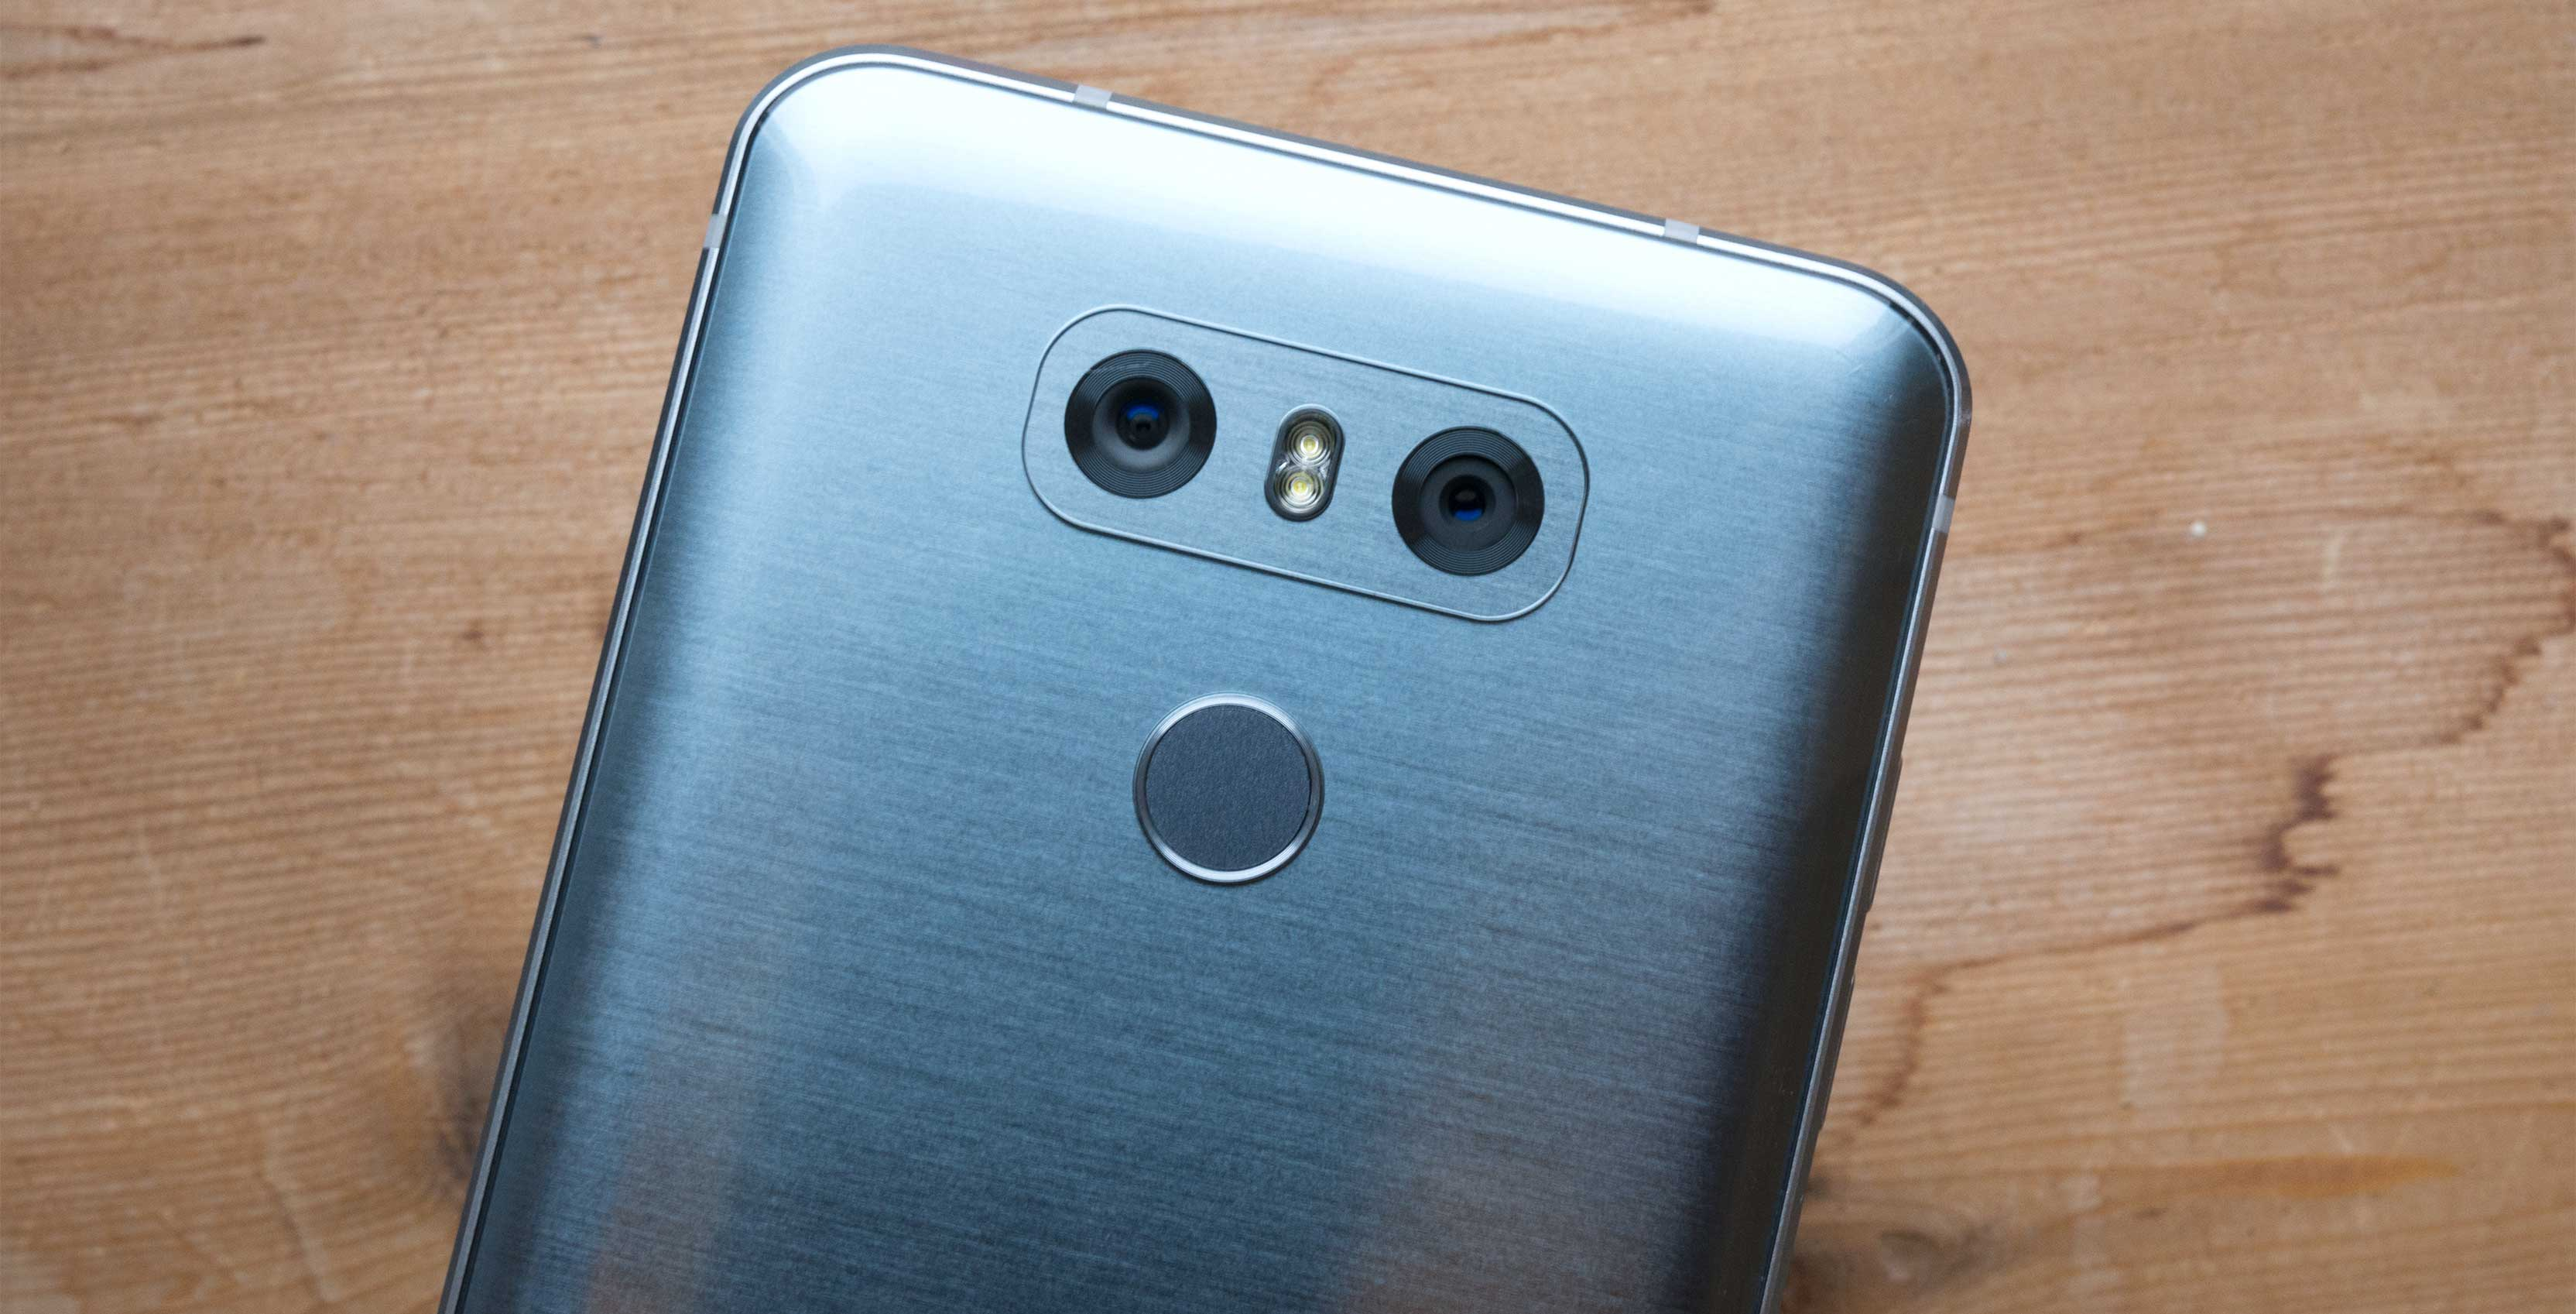 The LG G6 features one of the best smartphone cameras